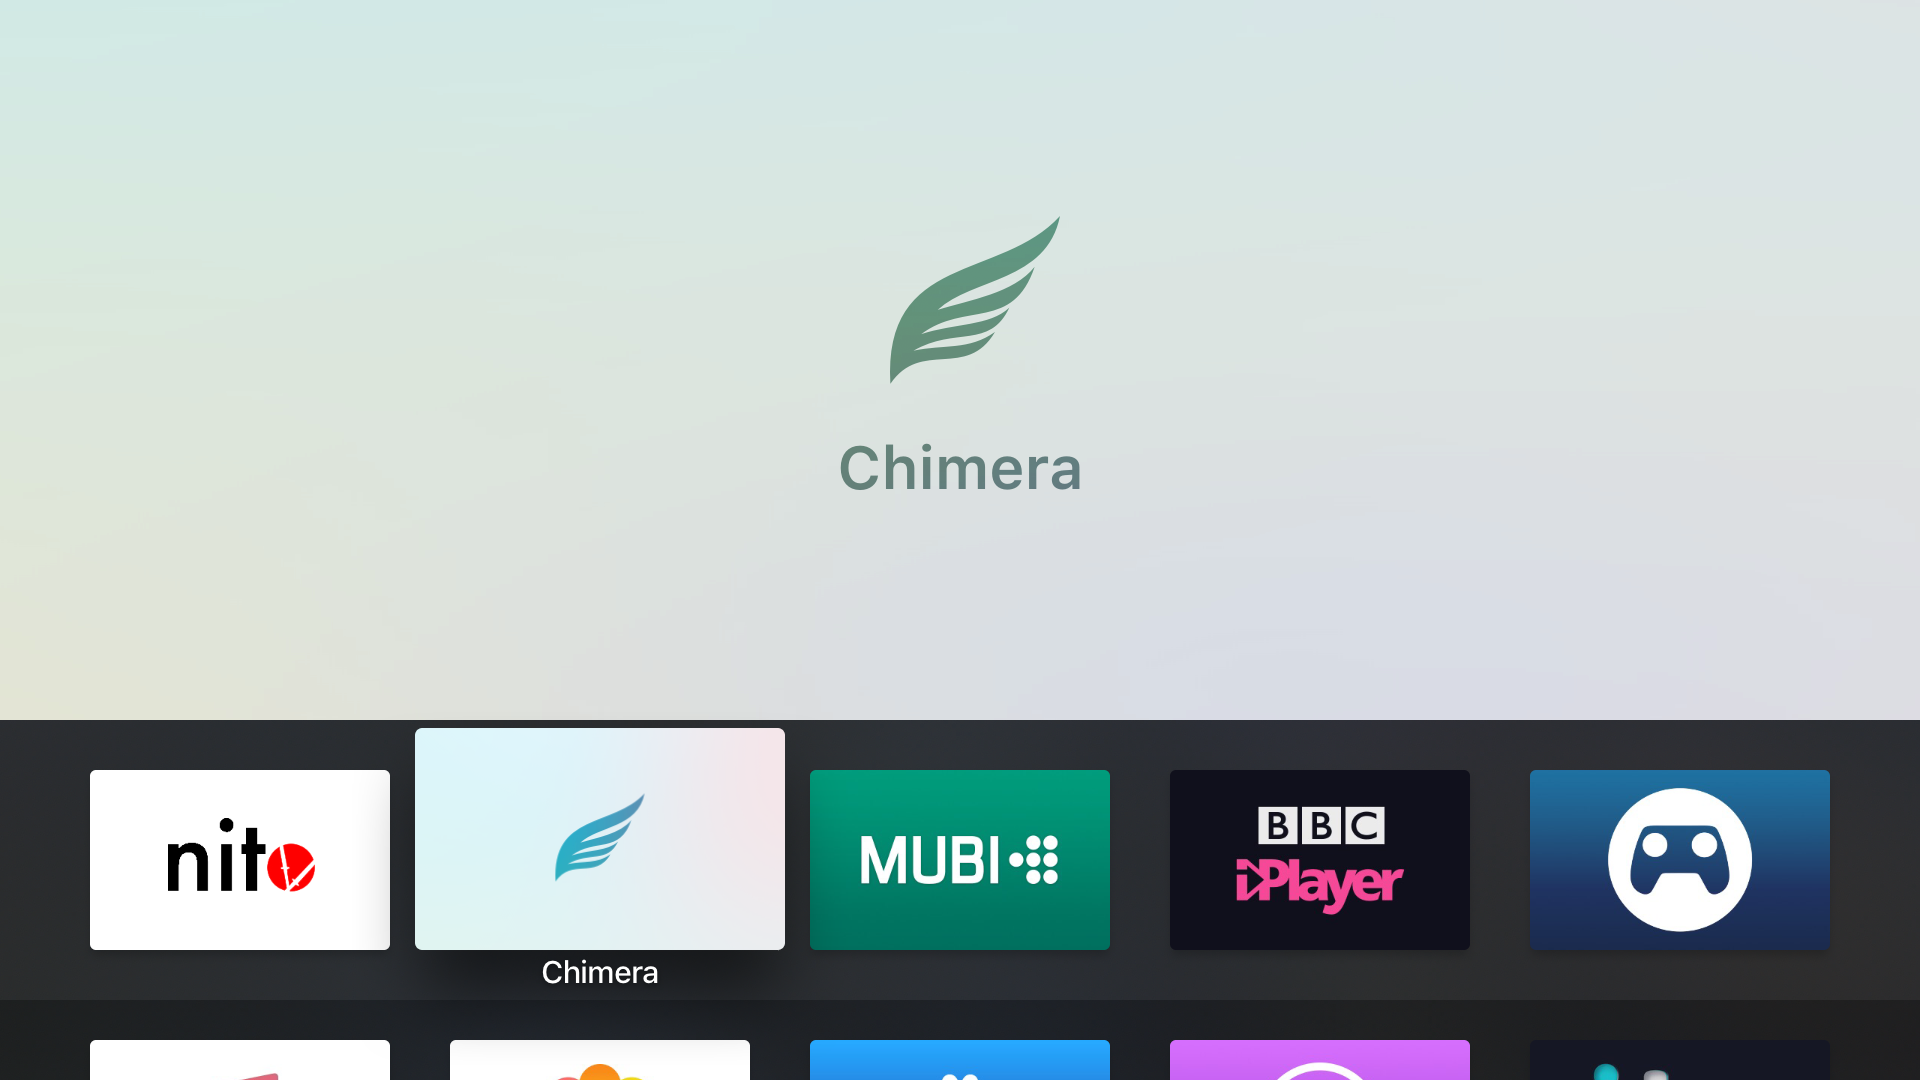 How to jailbreak the Apple TV 4 and 4K on tvOS 12 0-12 2 with ChimeraTV